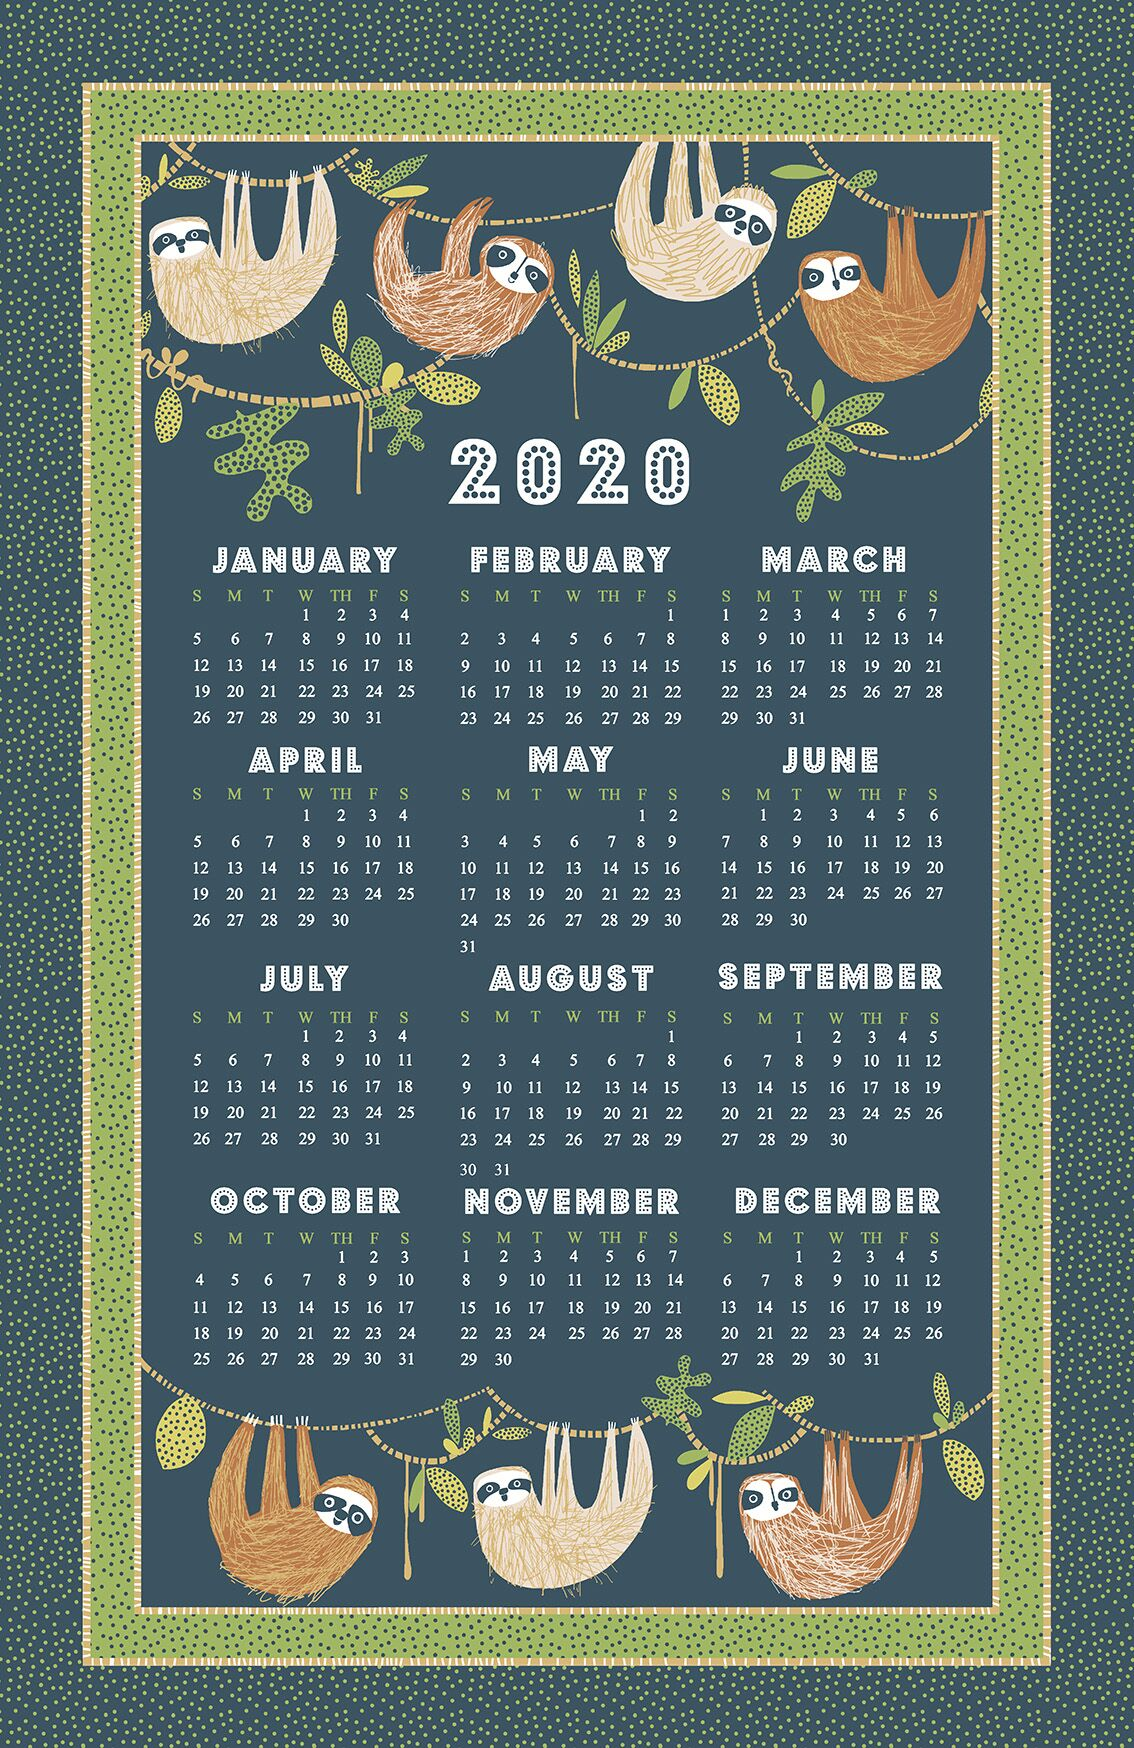 """Hanging About"" 2020 Calendar Tea Towel by Ulster Weavers-"